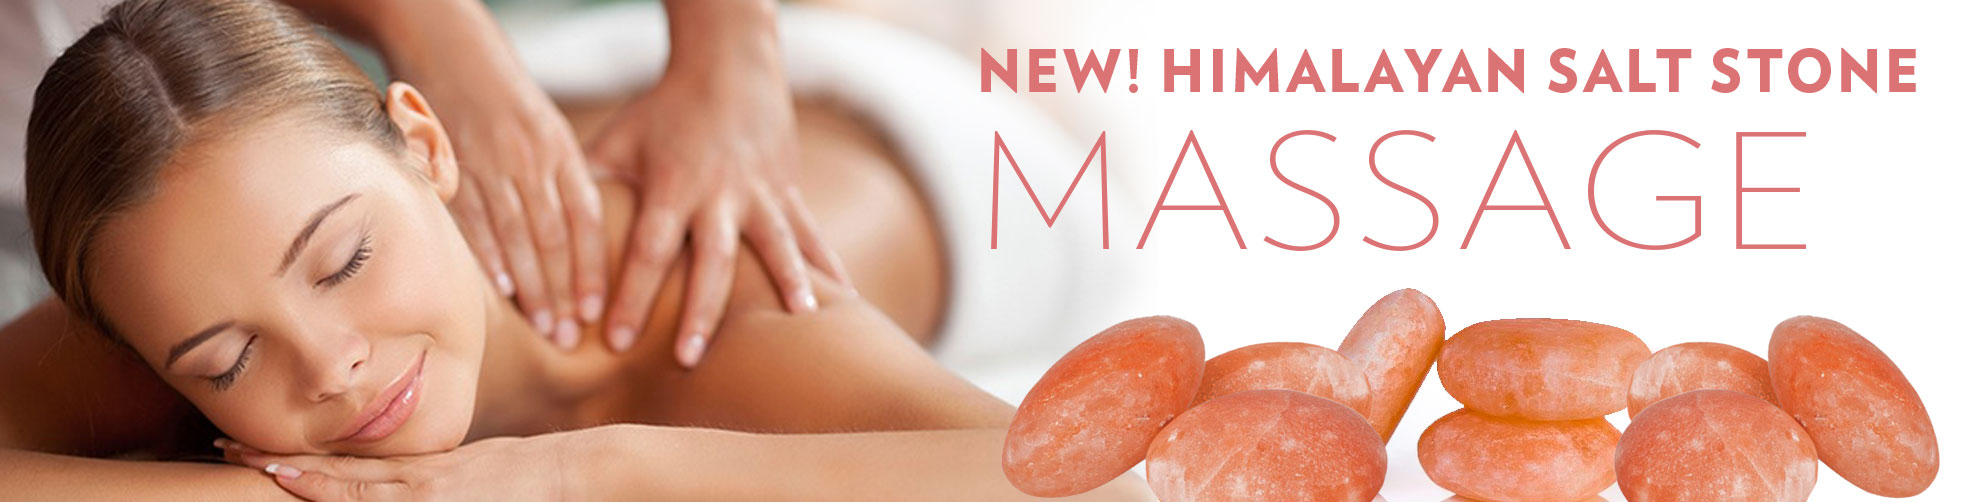 salt stone massage santa clarita